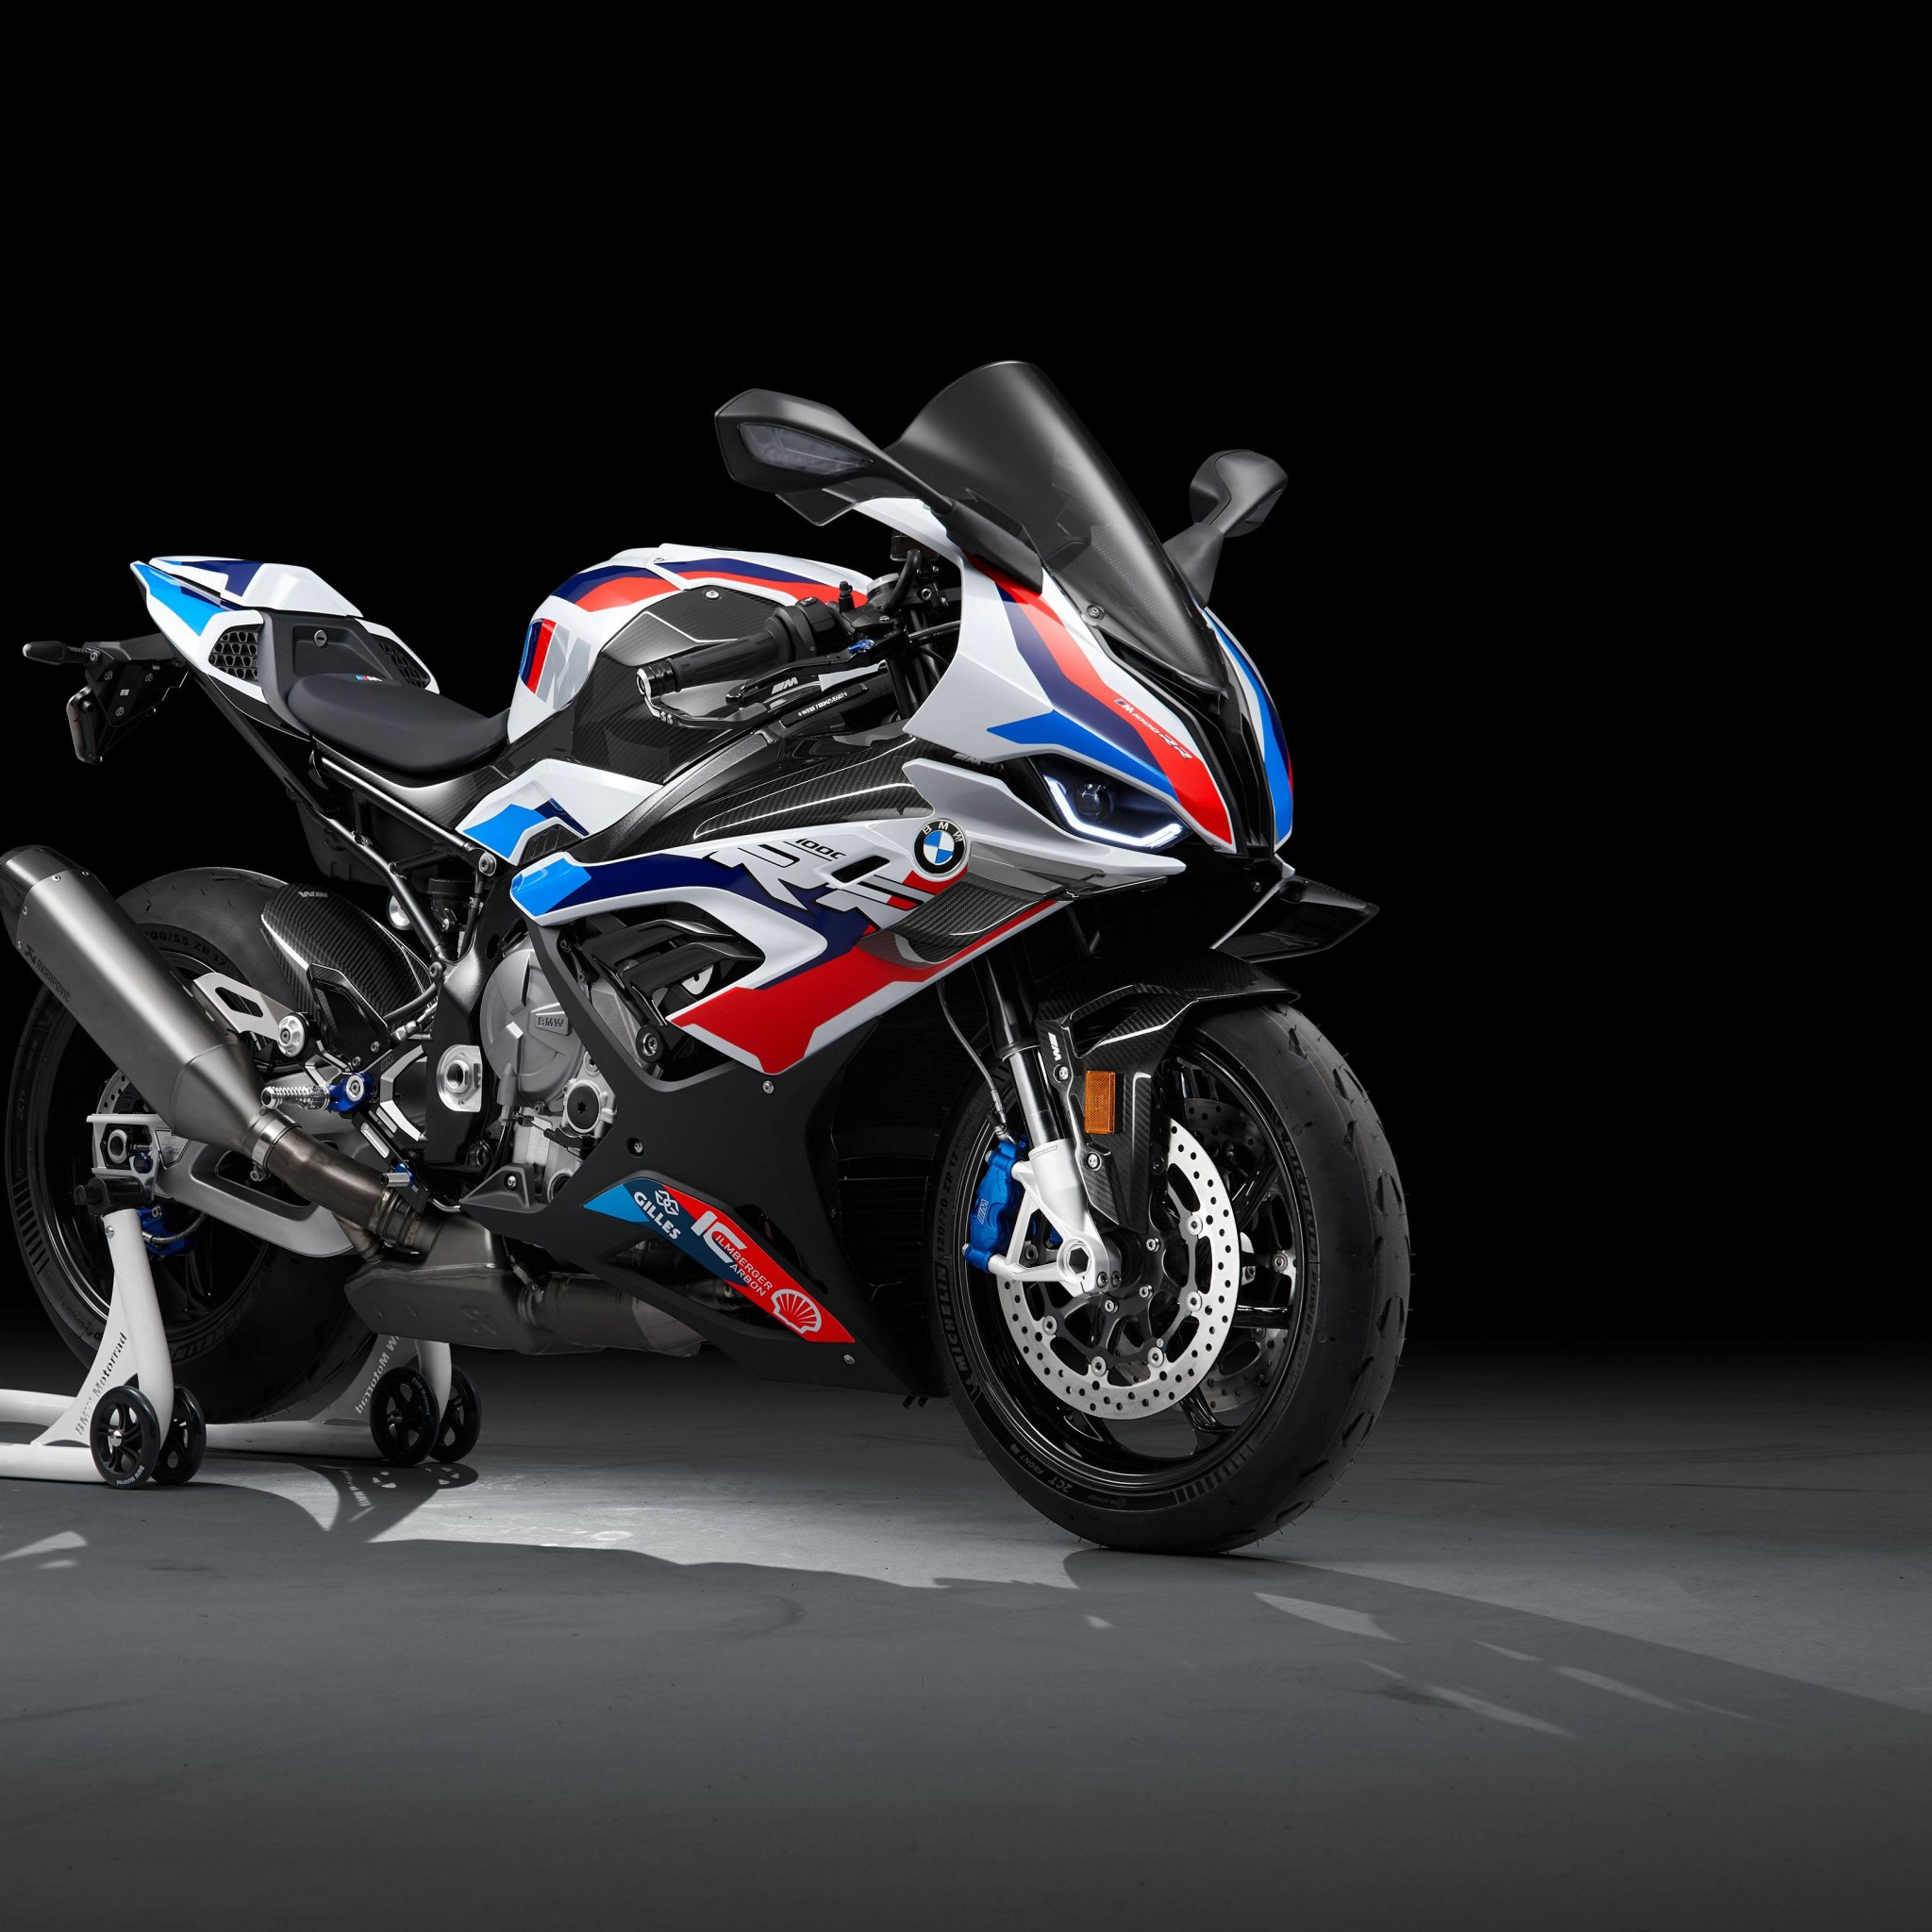 bmw m 1000 rr race bikes black background 2021 5k 2743